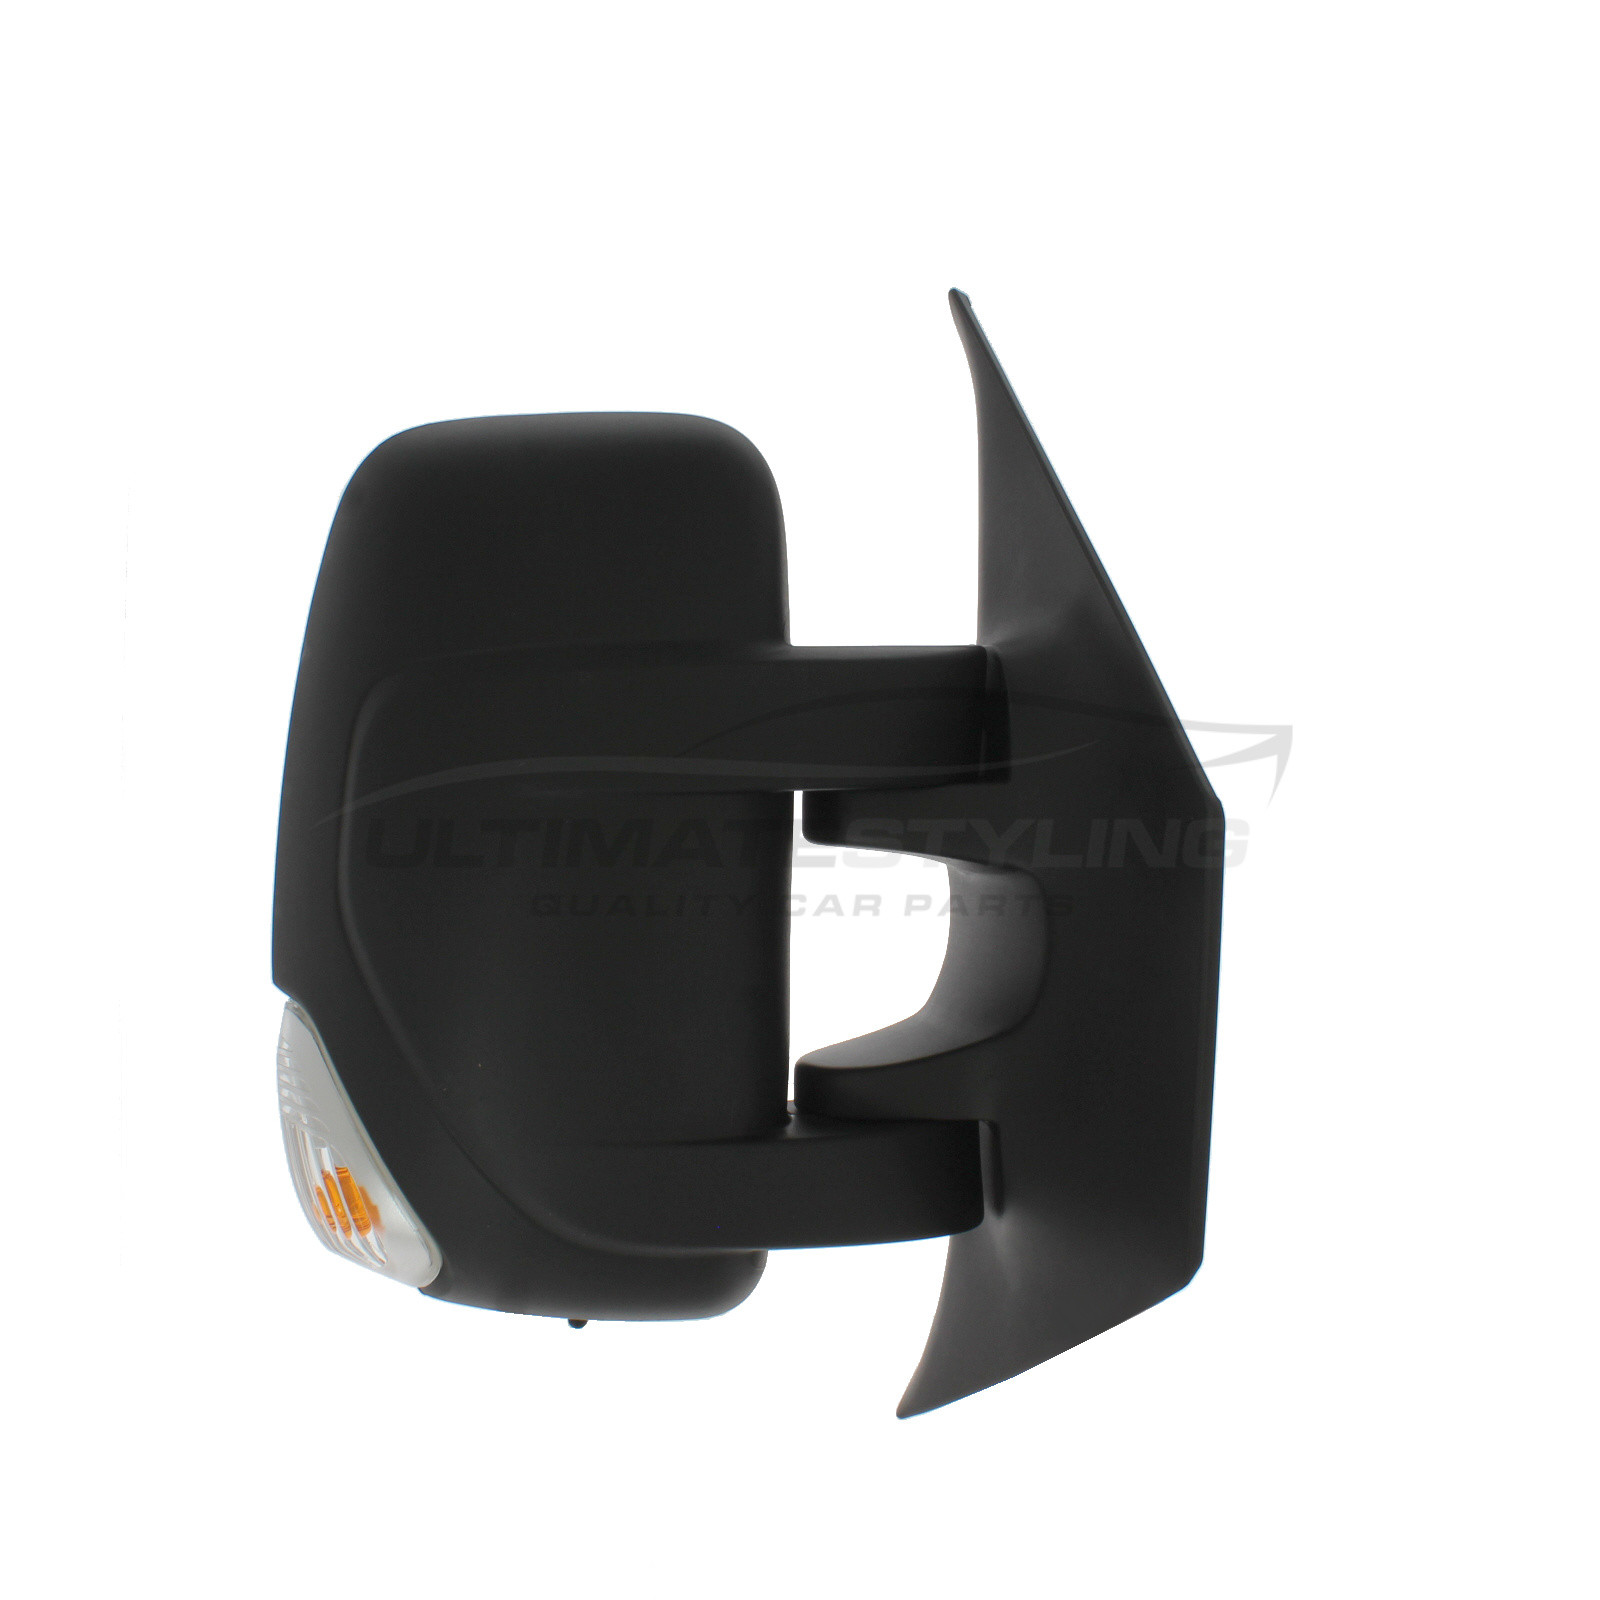 RENAULT MASTER VAUXHALL MOVANO RH DRIVER SIDE REAR VIEW DOOR MIRROR COVER